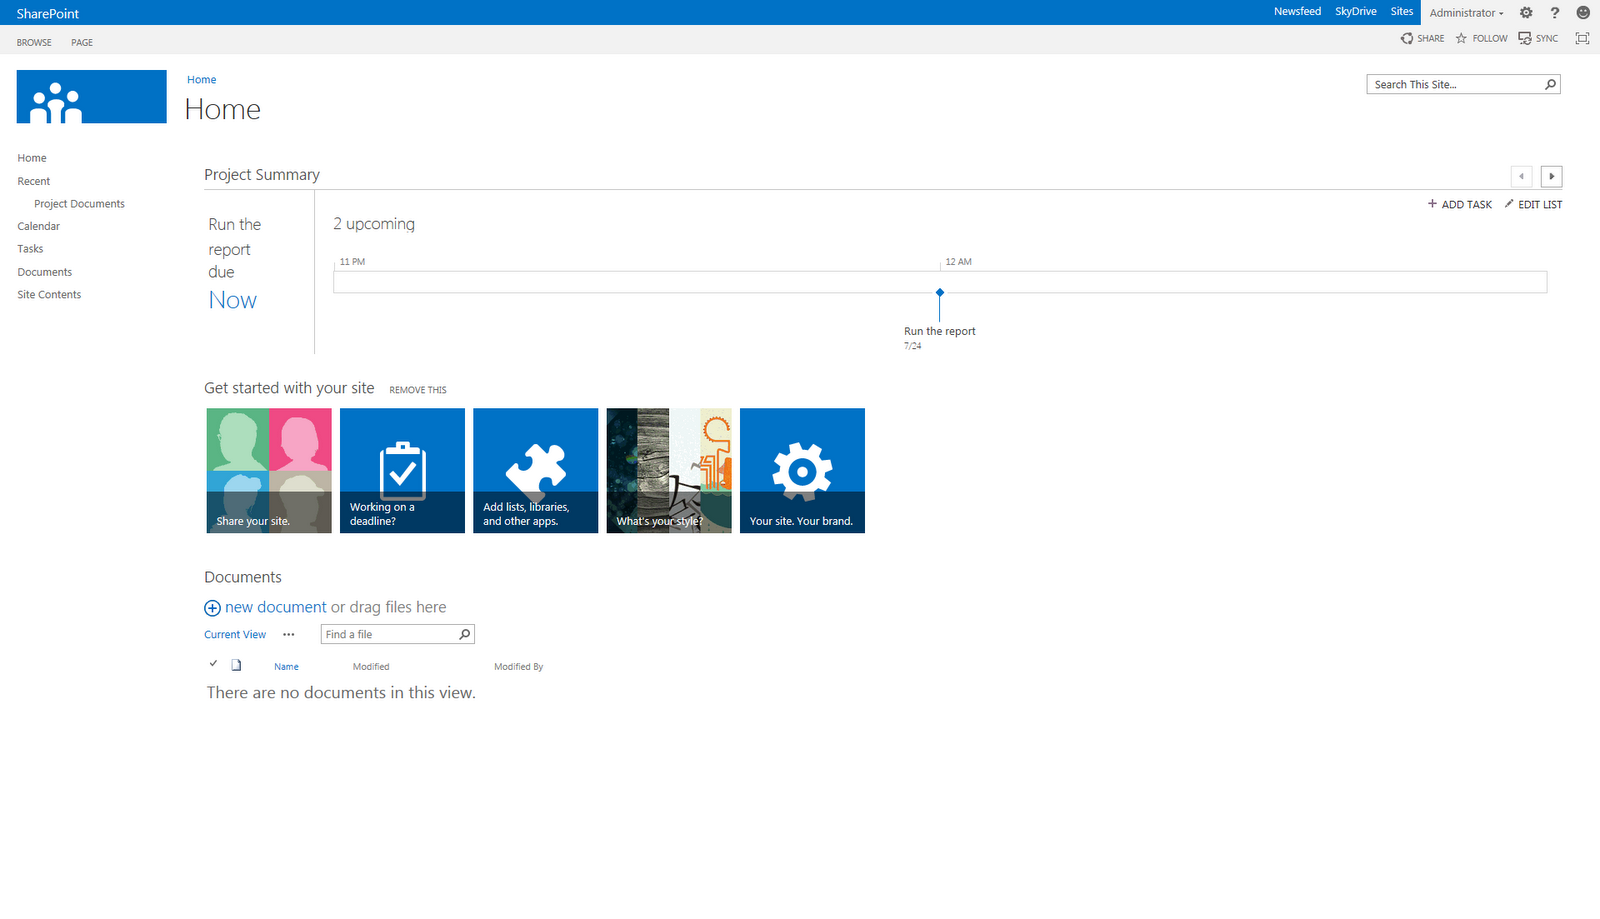 SharePoint 2013 Preview - Project Site template